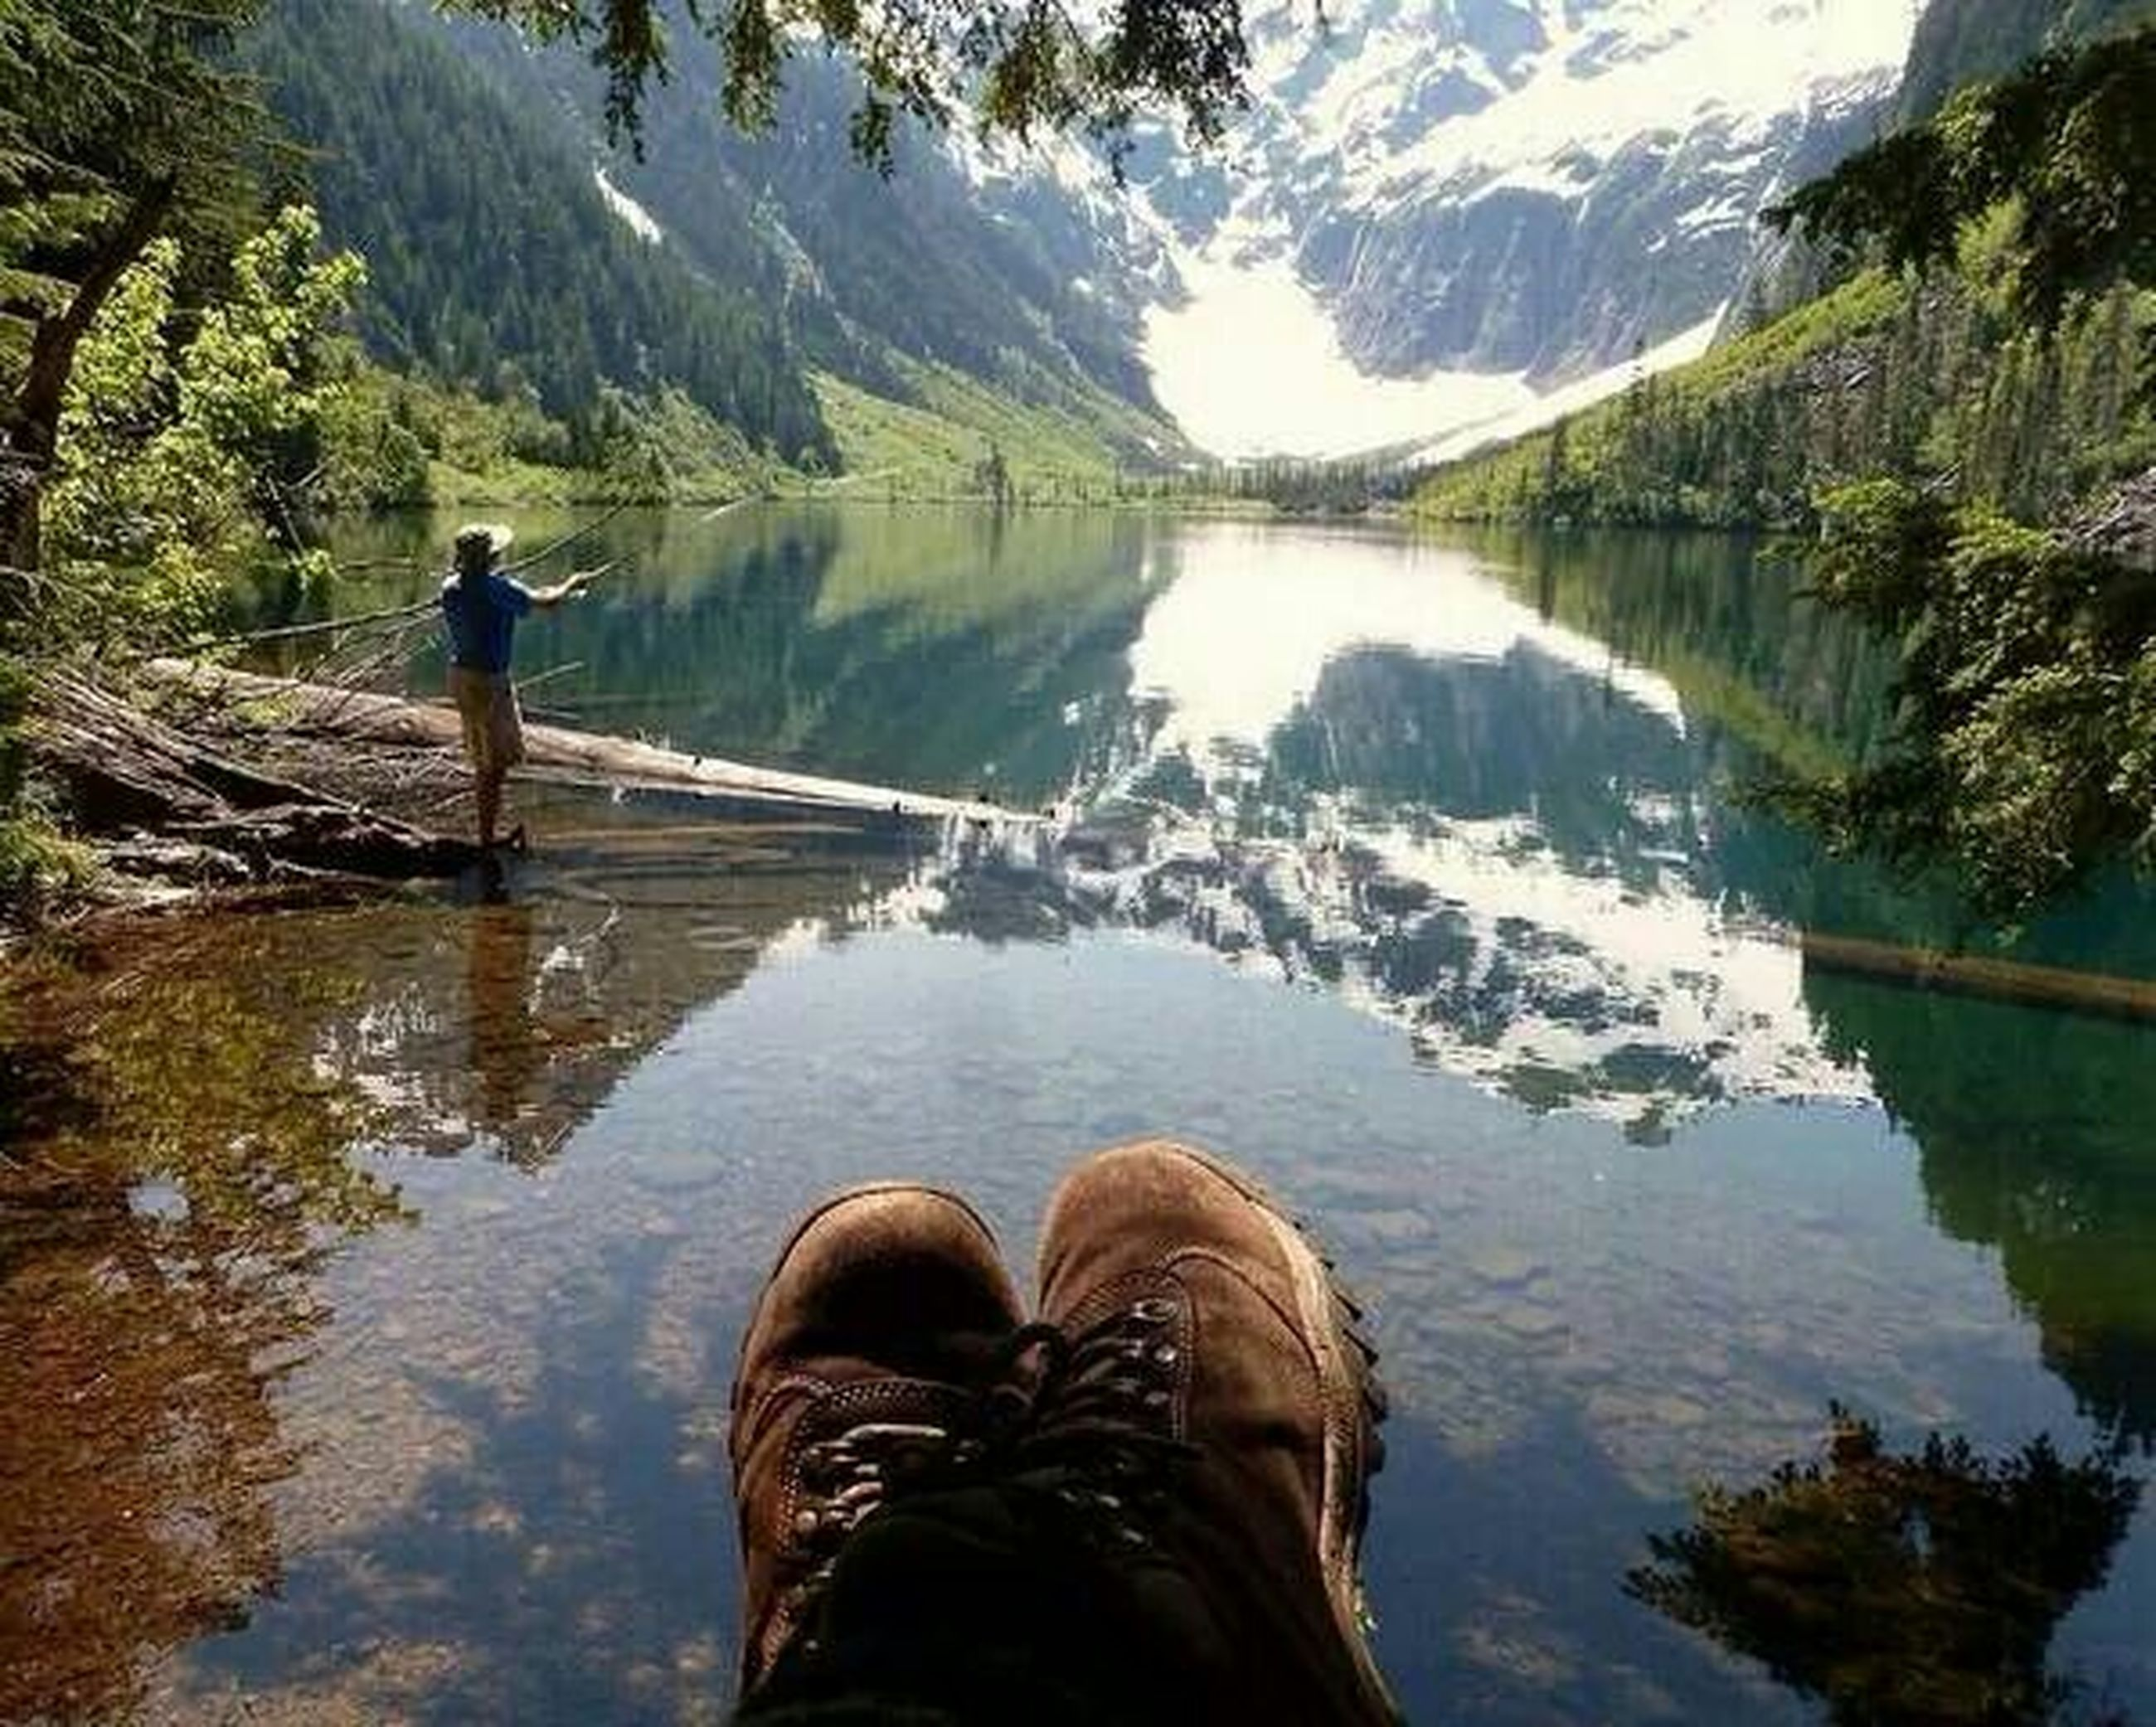 water, lake, reflection, low section, person, standing, lifestyles, men, tranquility, leisure activity, shoe, river, nature, tranquil scene, personal perspective, scenics, mountain, beauty in nature